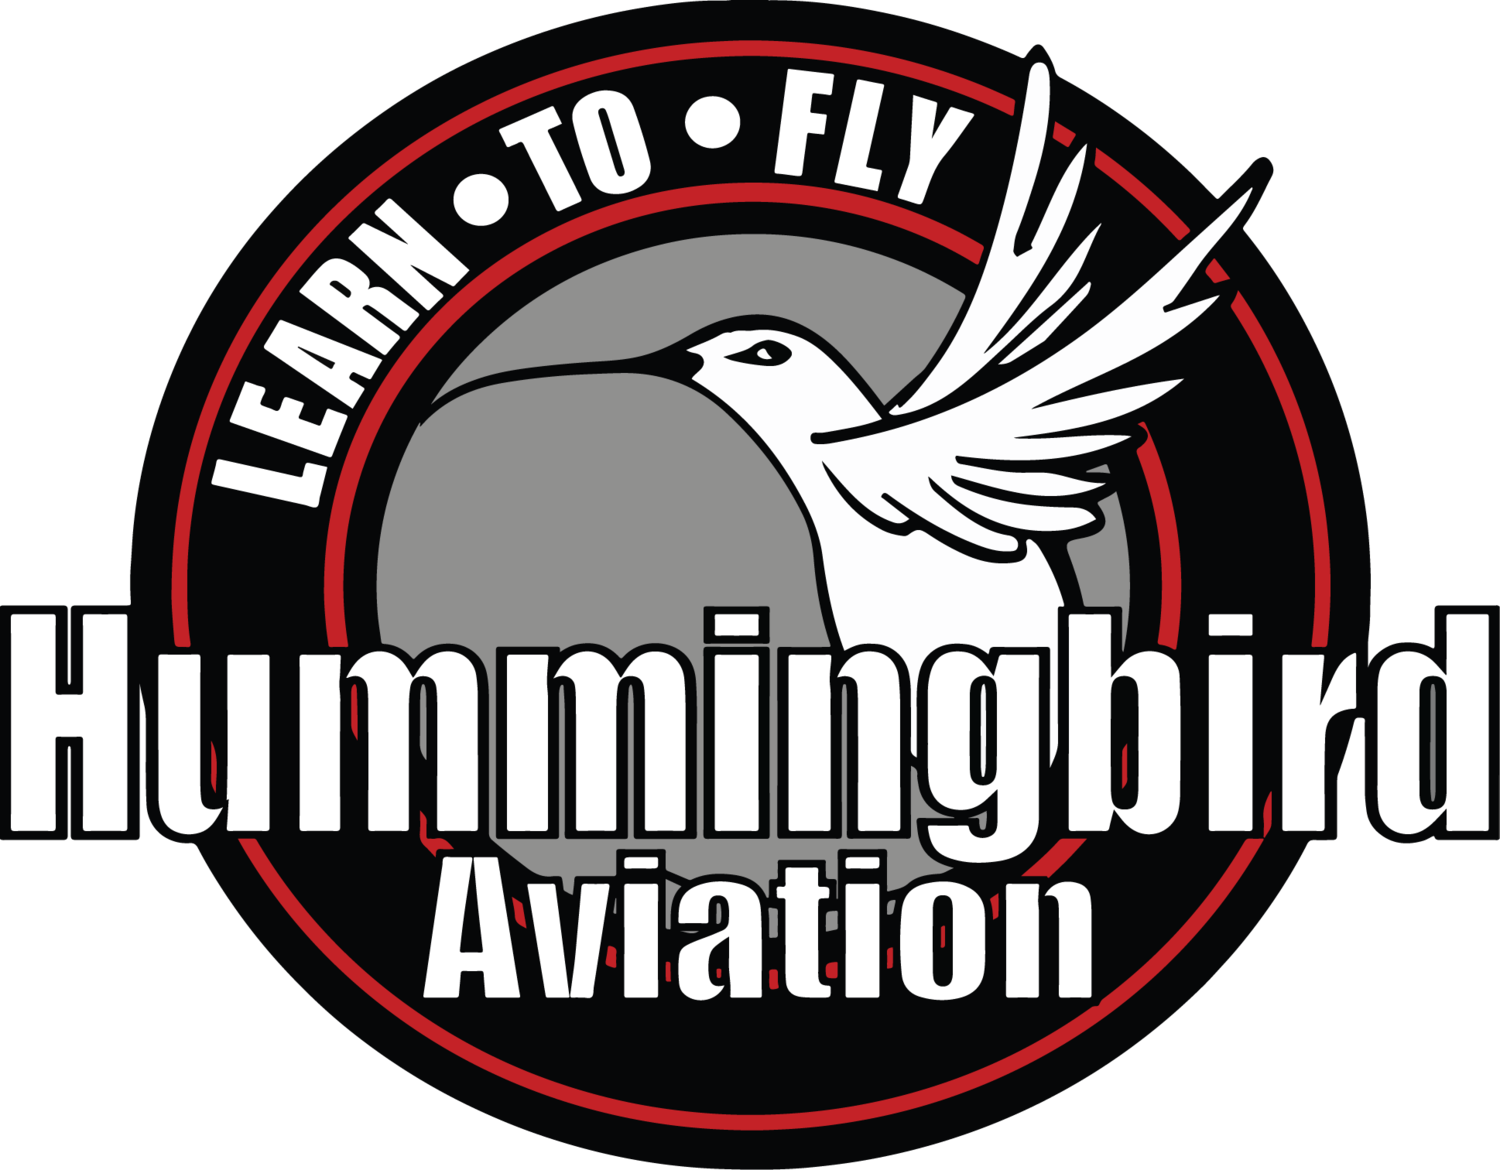 Hummingbird Aviation LLC